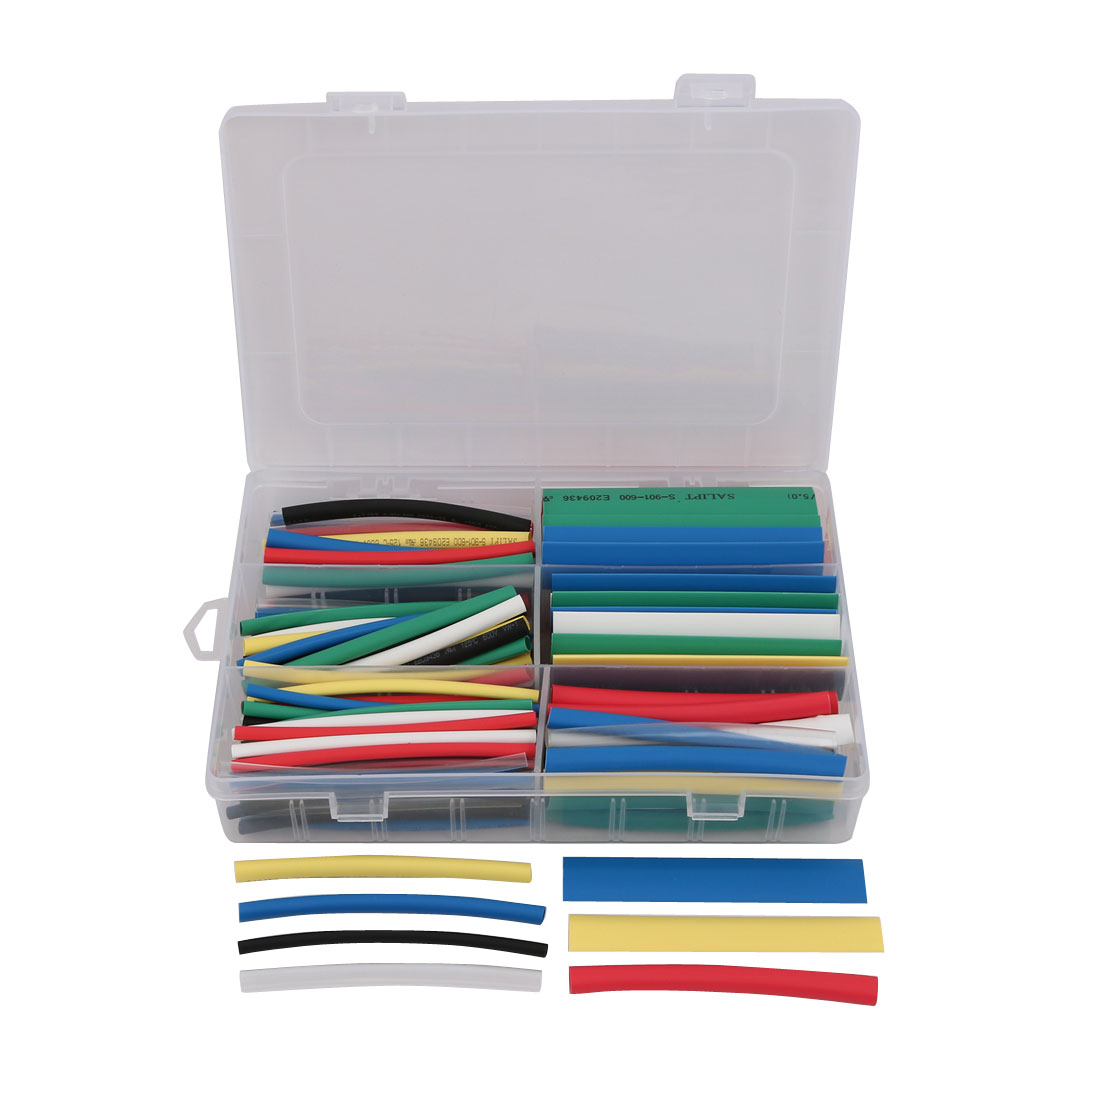 1Set 6 Size 7 Color Polyolefin Heat Shrinkable Tube Wrap Sleeve for Wire Repair